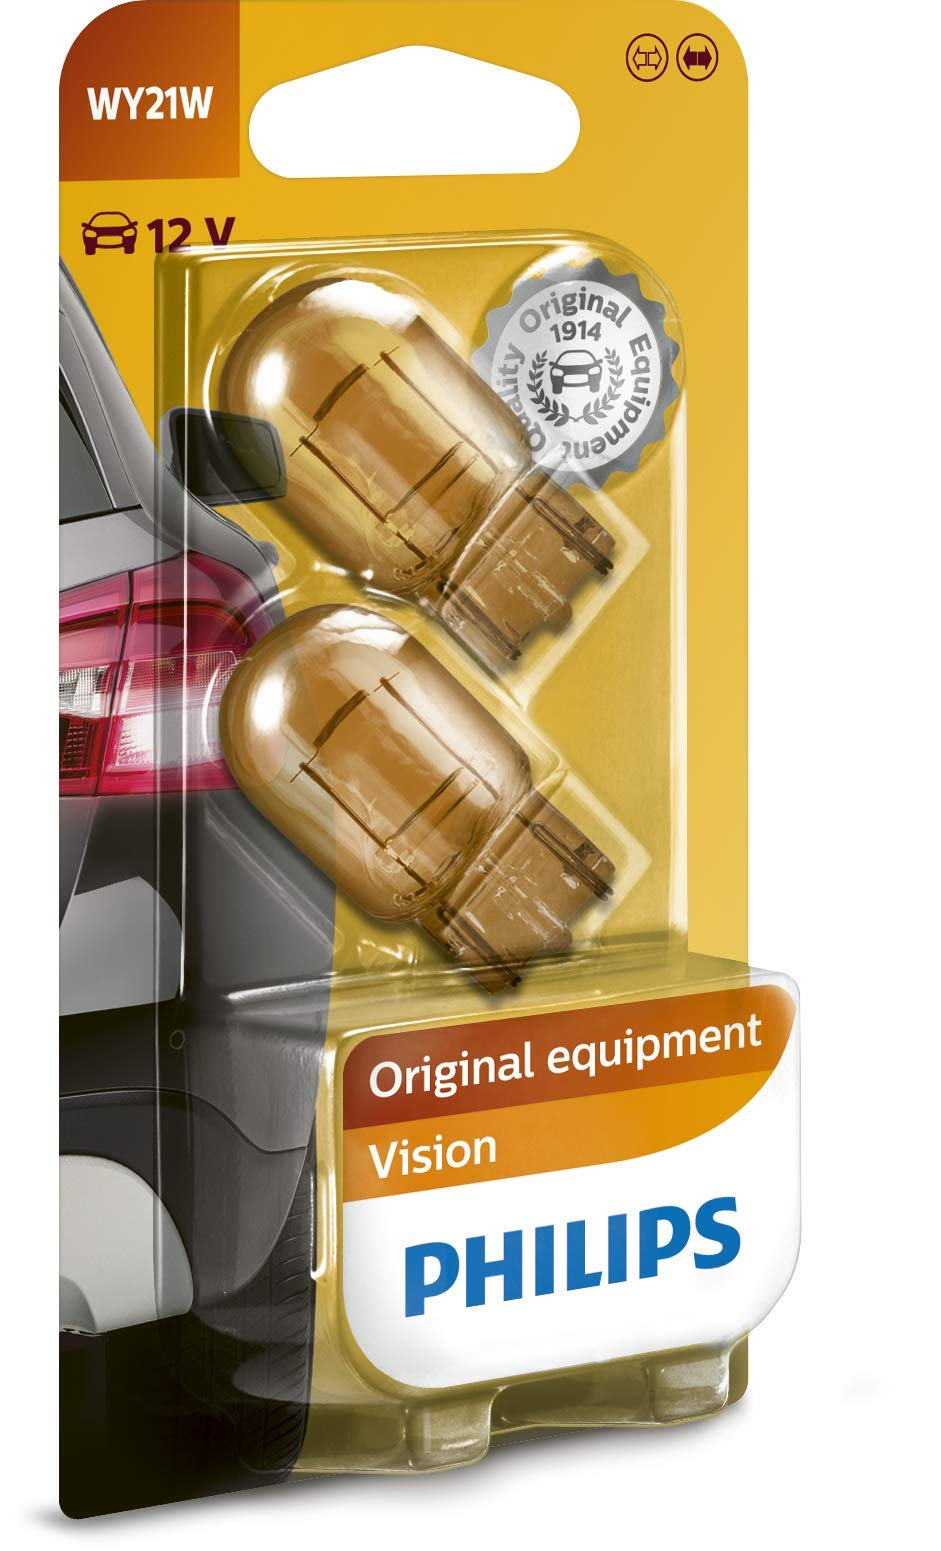 Philips 12071B2 Glassockellampe WY21W, 2-er Blister von Philips automotive lighting